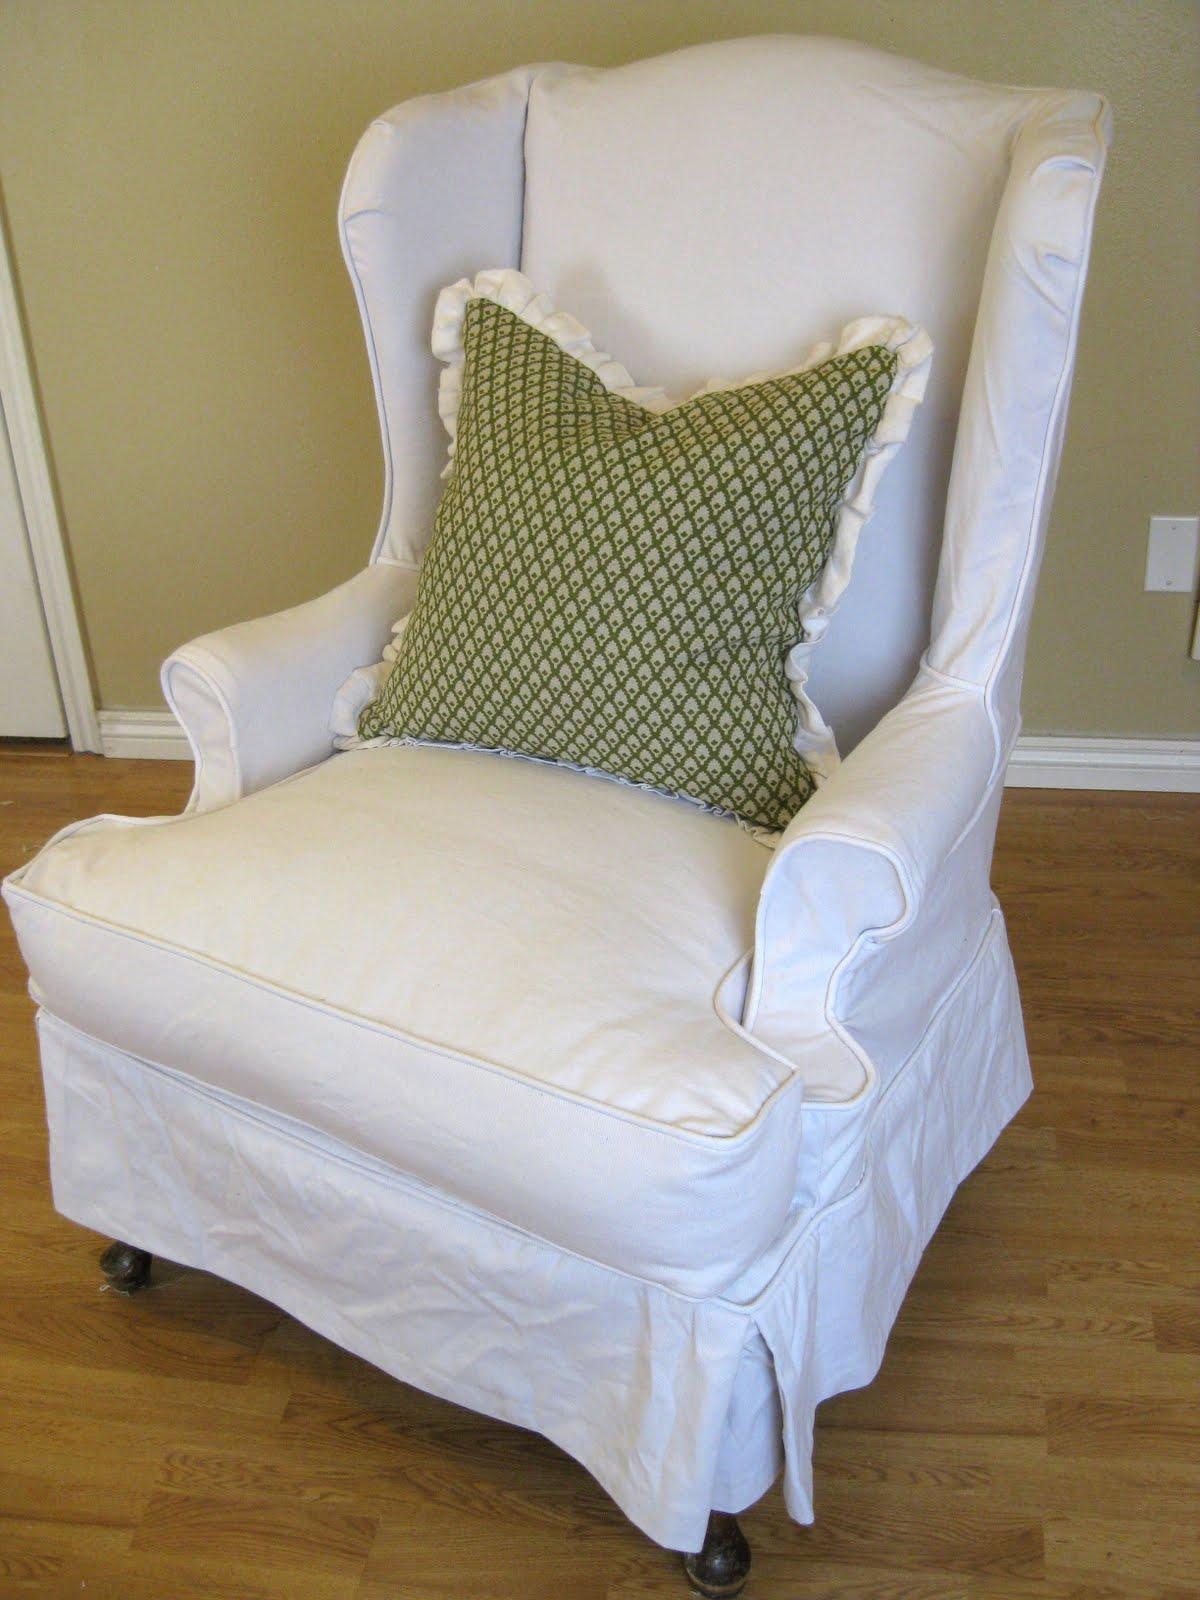 Amazing Slip Cover For Chair In White With Pretty Cushions And Wooden Floor For  Home Ideas